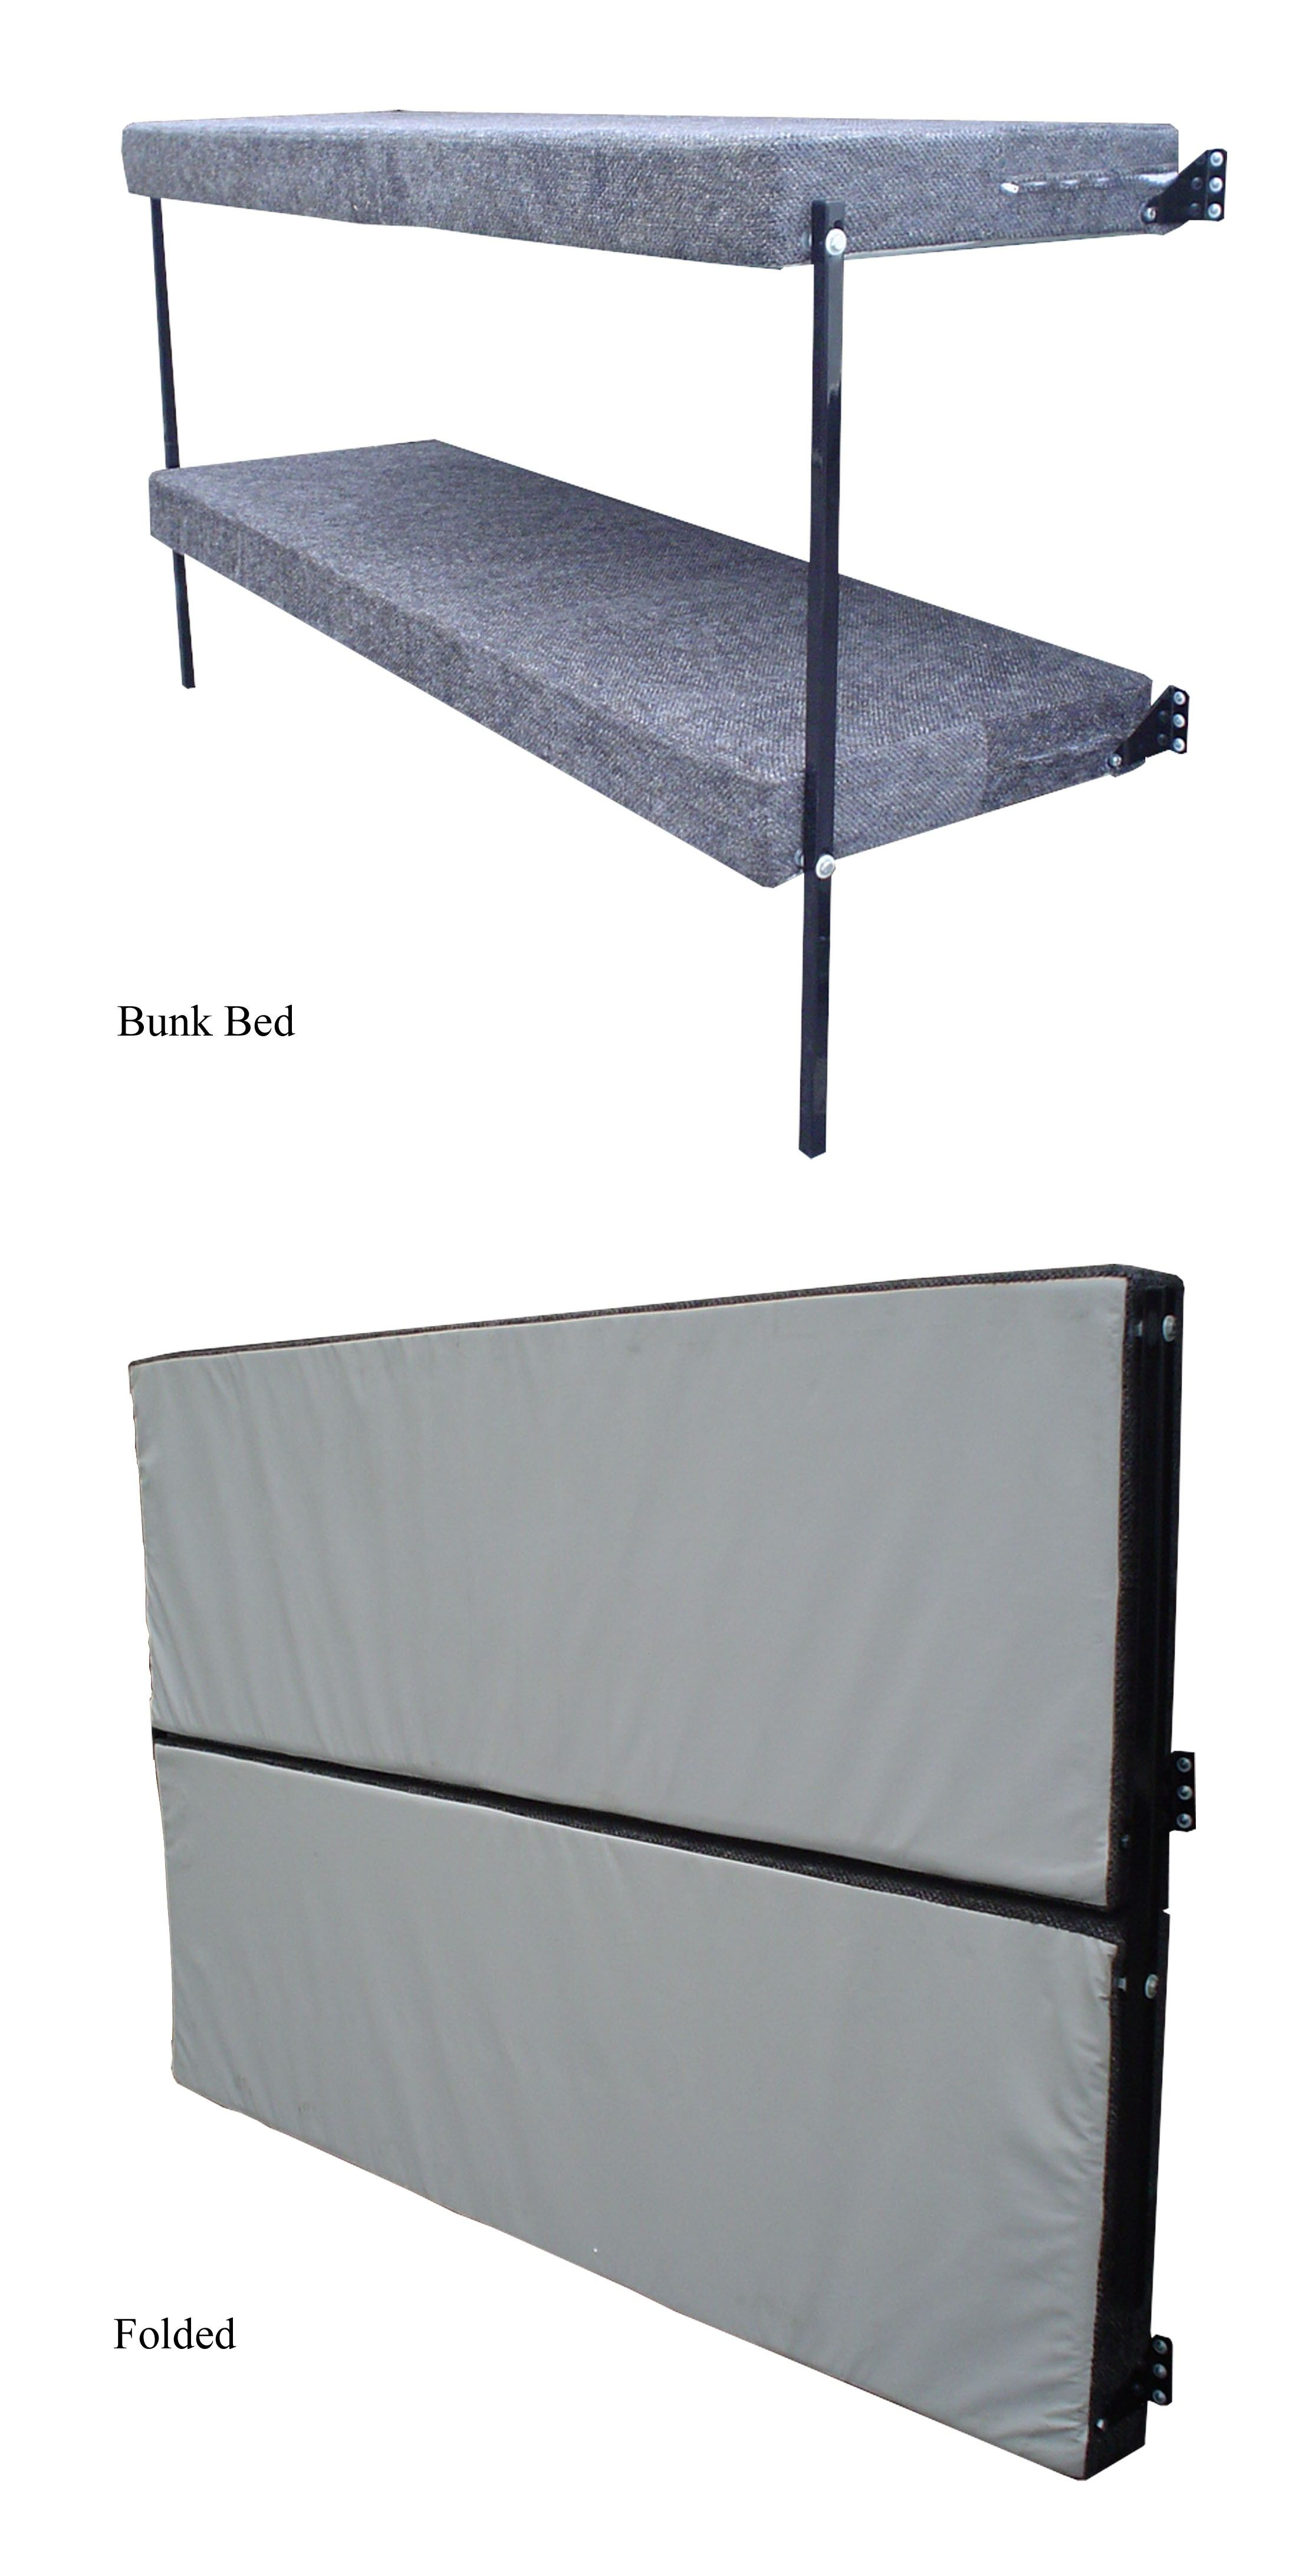 Wall Mount Folding Bunk Bed Ice Fishing Camper Bed Bunk Beds